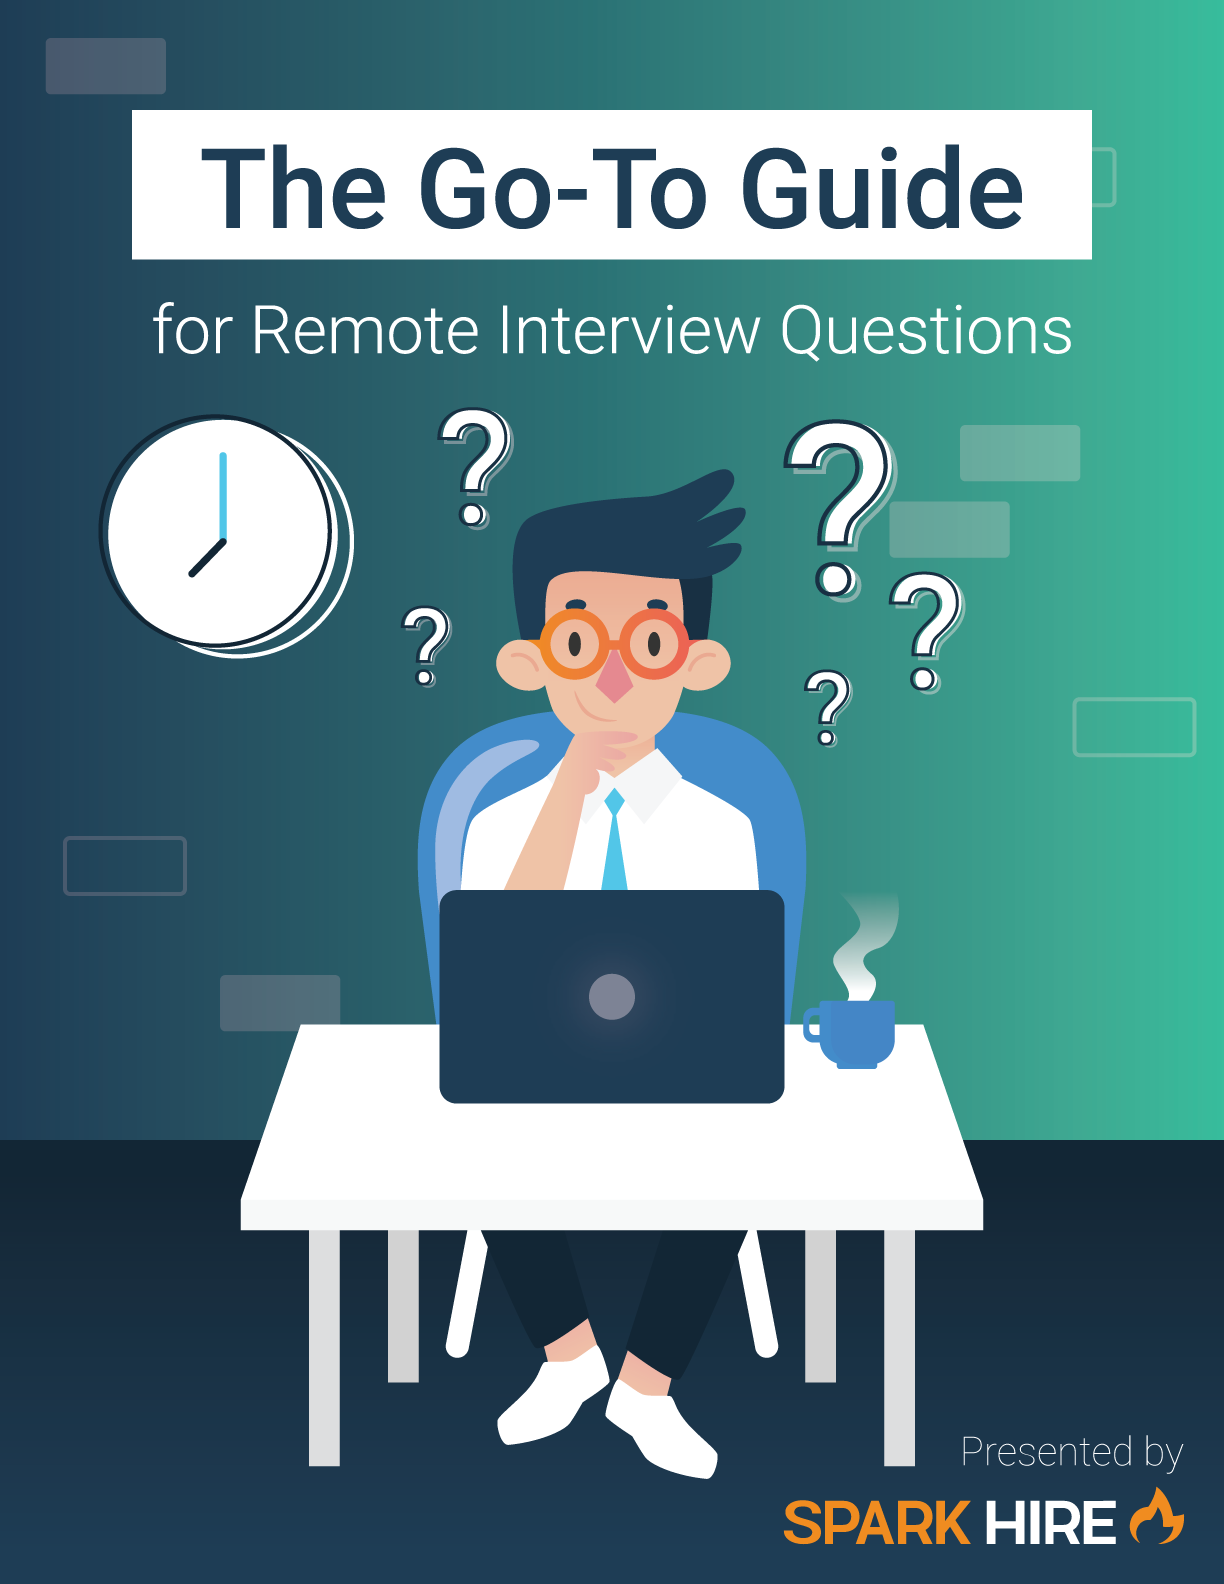 The Go-To Guide for Remote Interview Questions